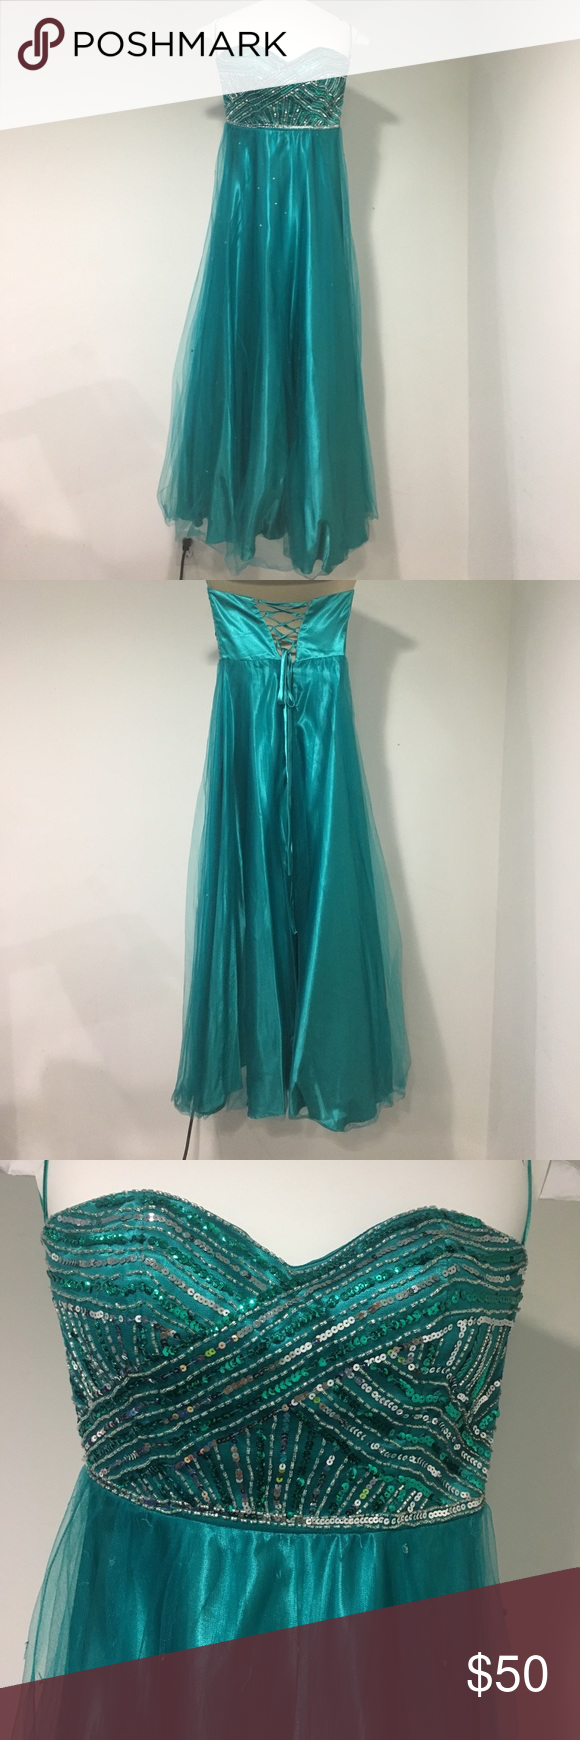 Teal prom dress size 3/4 | Strapless prom dresses, Silk skirt and Teal